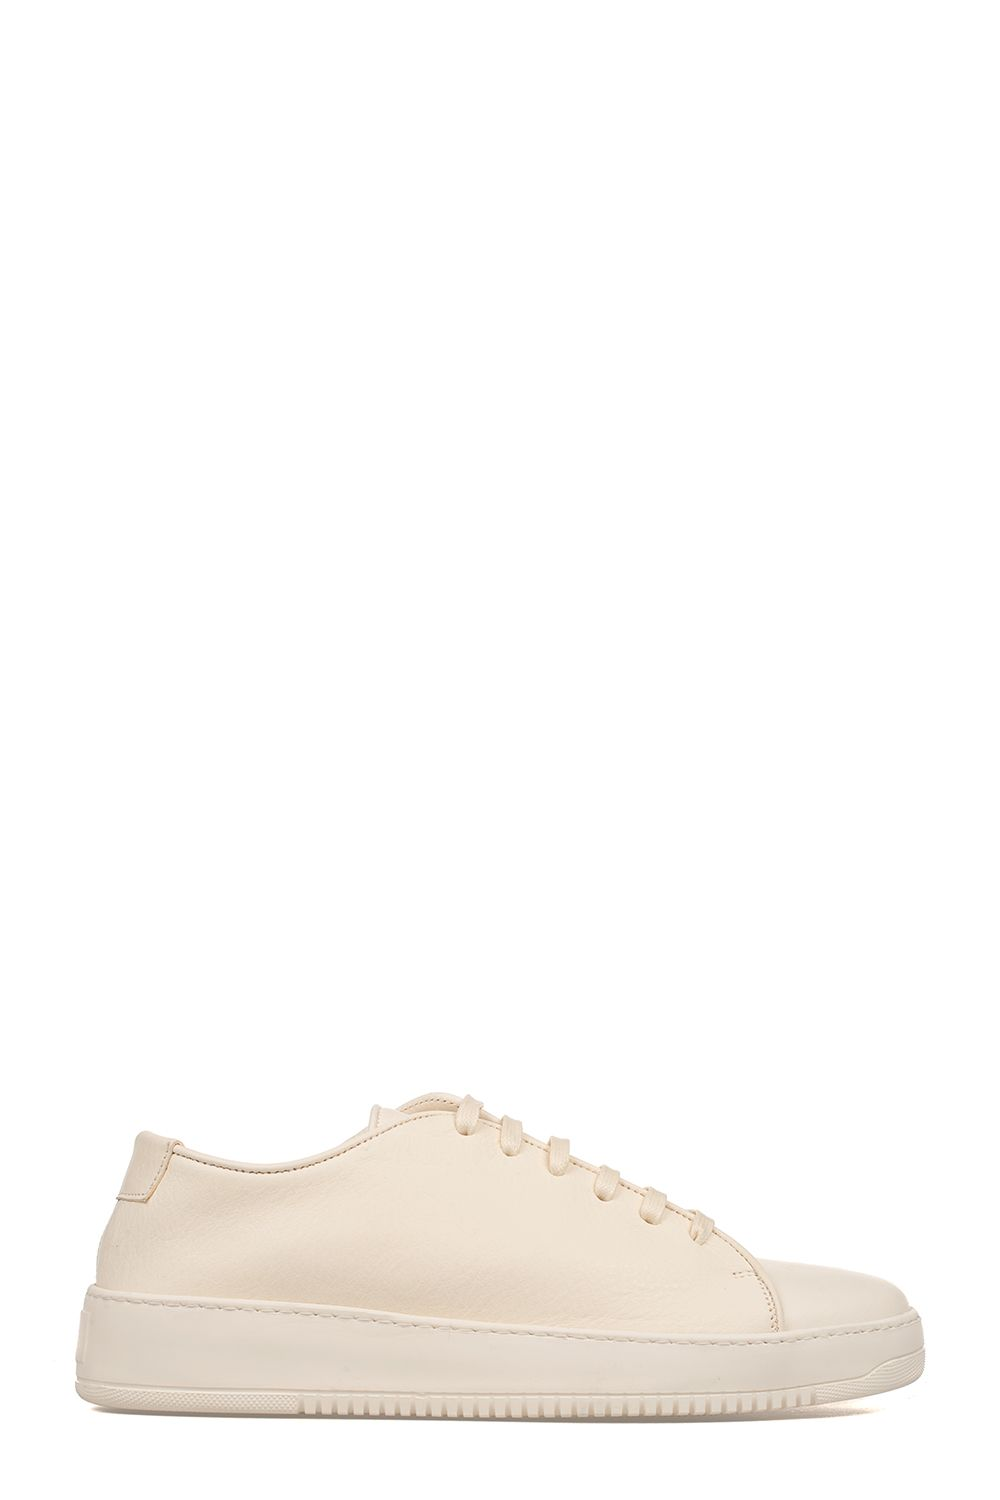 Milk White Hammered Leather Sneakers